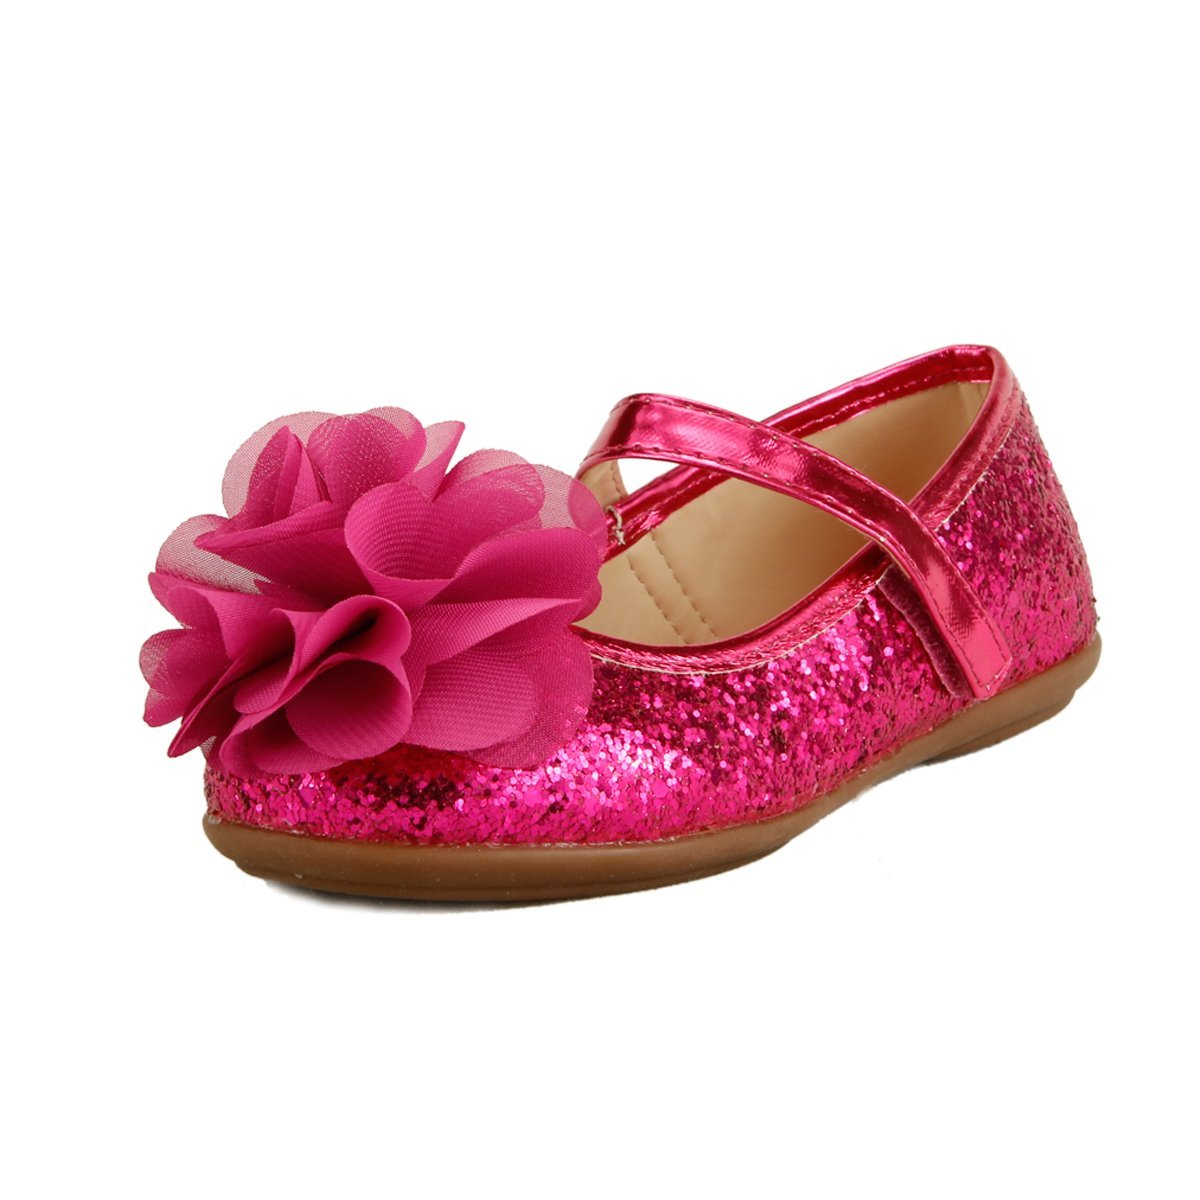 Wedding Party Flower Girl's Shoes Glitter Sparkling Chiffon Floral on Topper 3 Colors (13, Hot Pink)